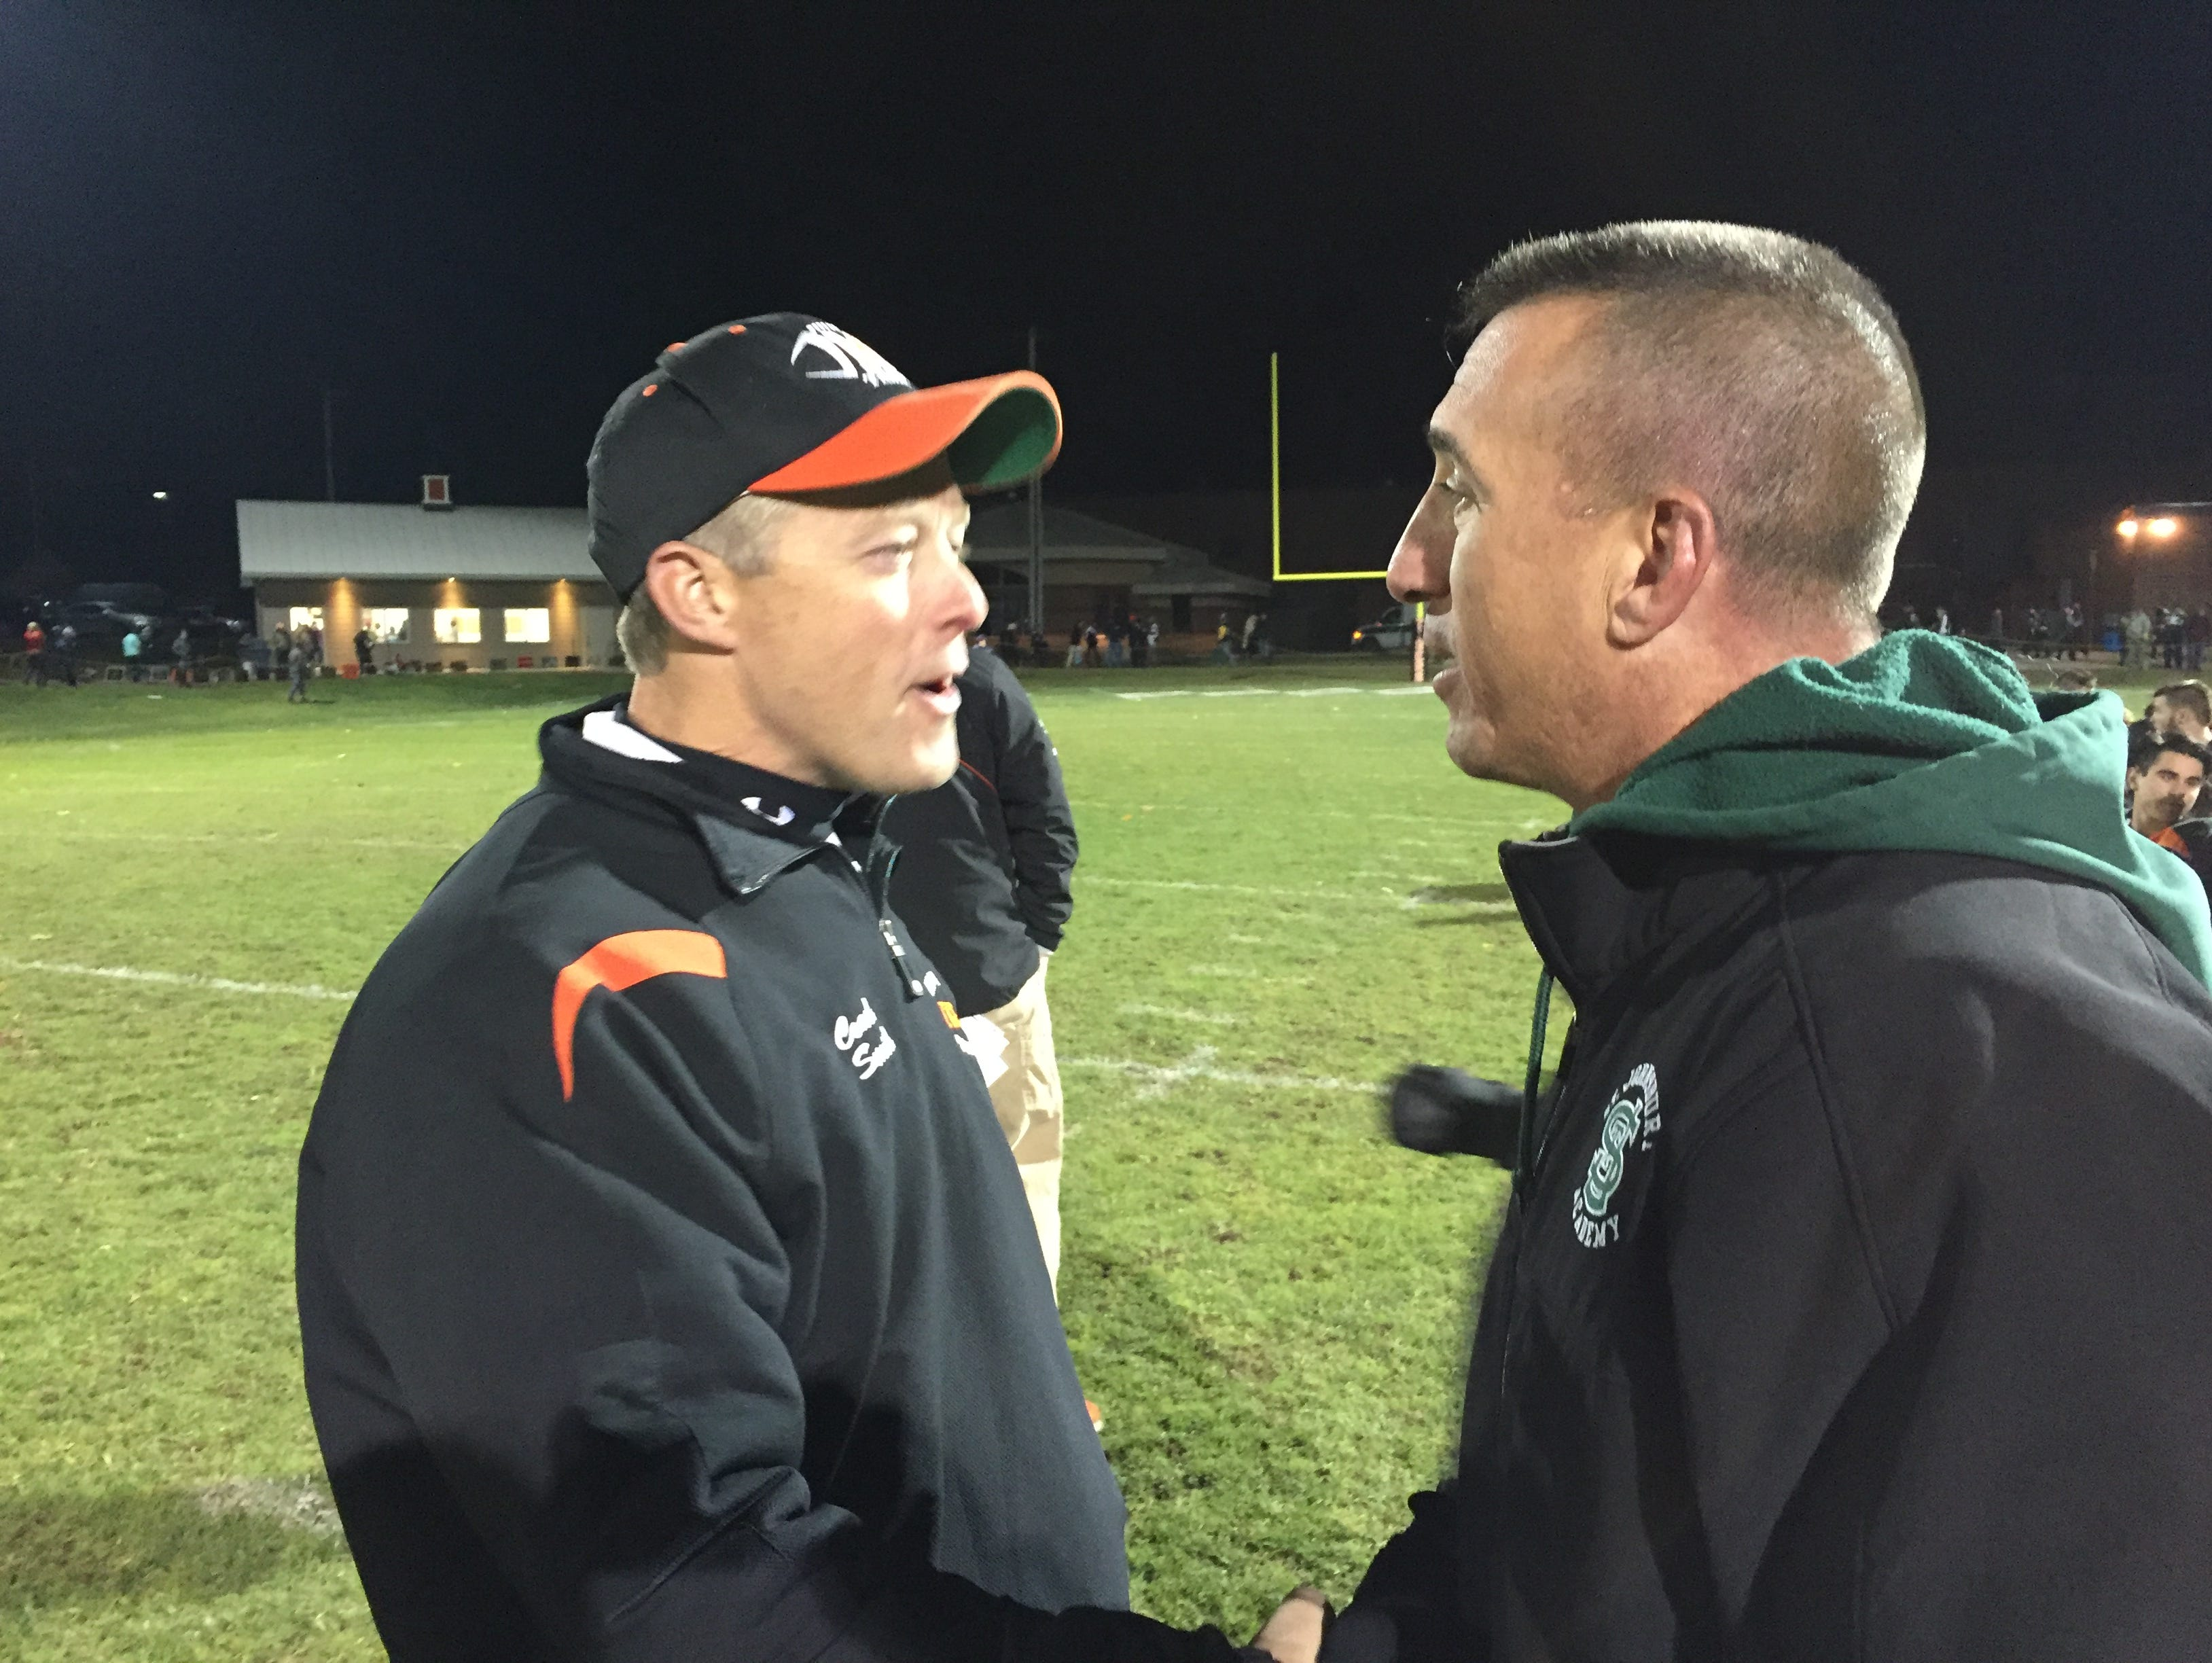 Middlebury coach Dennis Smith, left, and St. Johnsbury coach Rich Alercio, shake hands following the Tigers' 38-12 win Friday night in Middlebury.